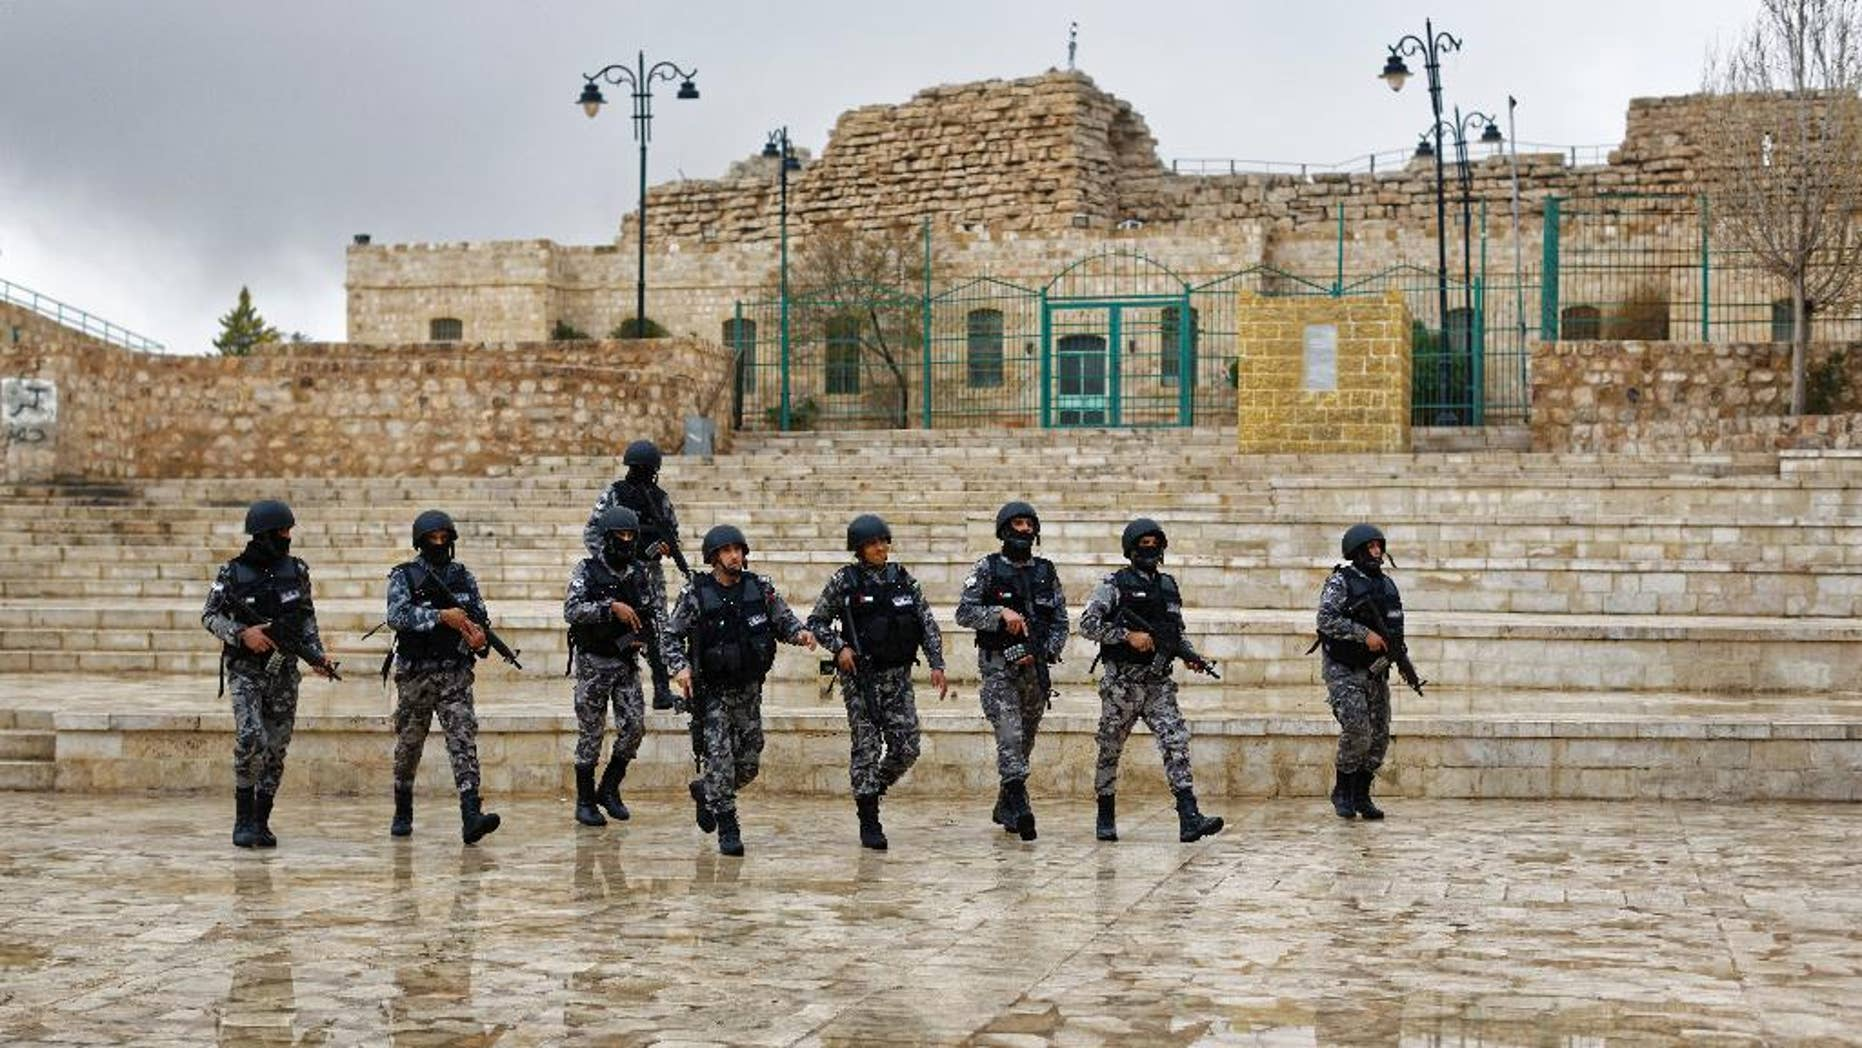 FILE -- In this Dec. 19, 2016 file photo, Jordanian security forces patrol in front of Karak Castle, where 10 people were killed on Dec. 18, 2016, in the central town of Karak, about 140 kilometers (87 miles) south of the capital Amman, Jordan. The recent Islamic State shooting rampage at Karak Castle, a popular tourism site in Jordan, could signal a more aggressive campaign by the extremist group to destabilize the pro-Western kingdom. A senior security official says members of the Karak cell, who were killed during the attack, had planned New Year's Eve attacks in Jordan, using five explosives belts. Jordan's government tries to allay concerns, saying its security forces can contain any threat. (AP Photo/Ben Curtis, File)